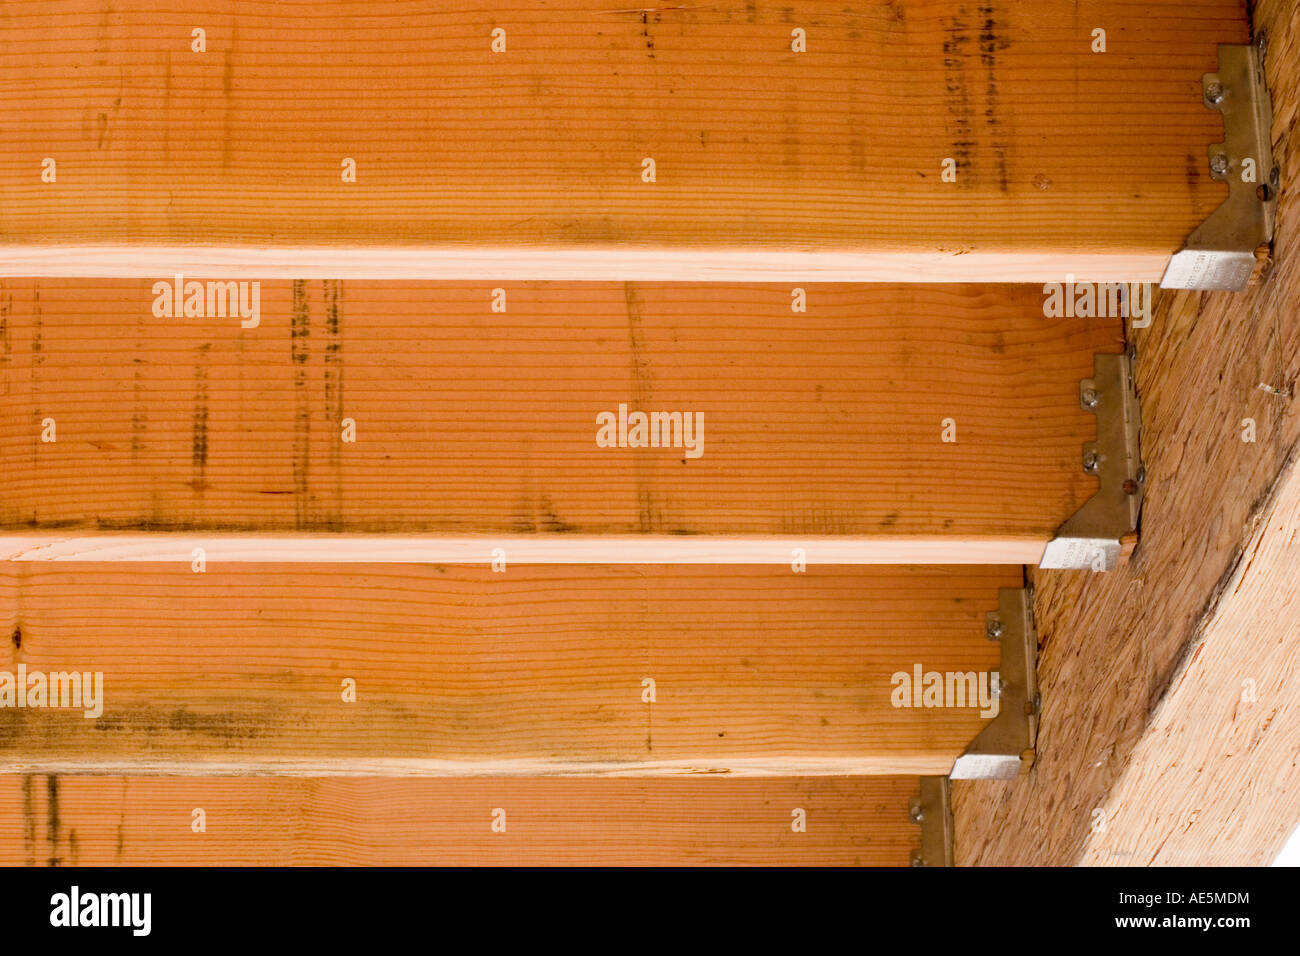 Floor joists attached to beam with joist hangers at a residential